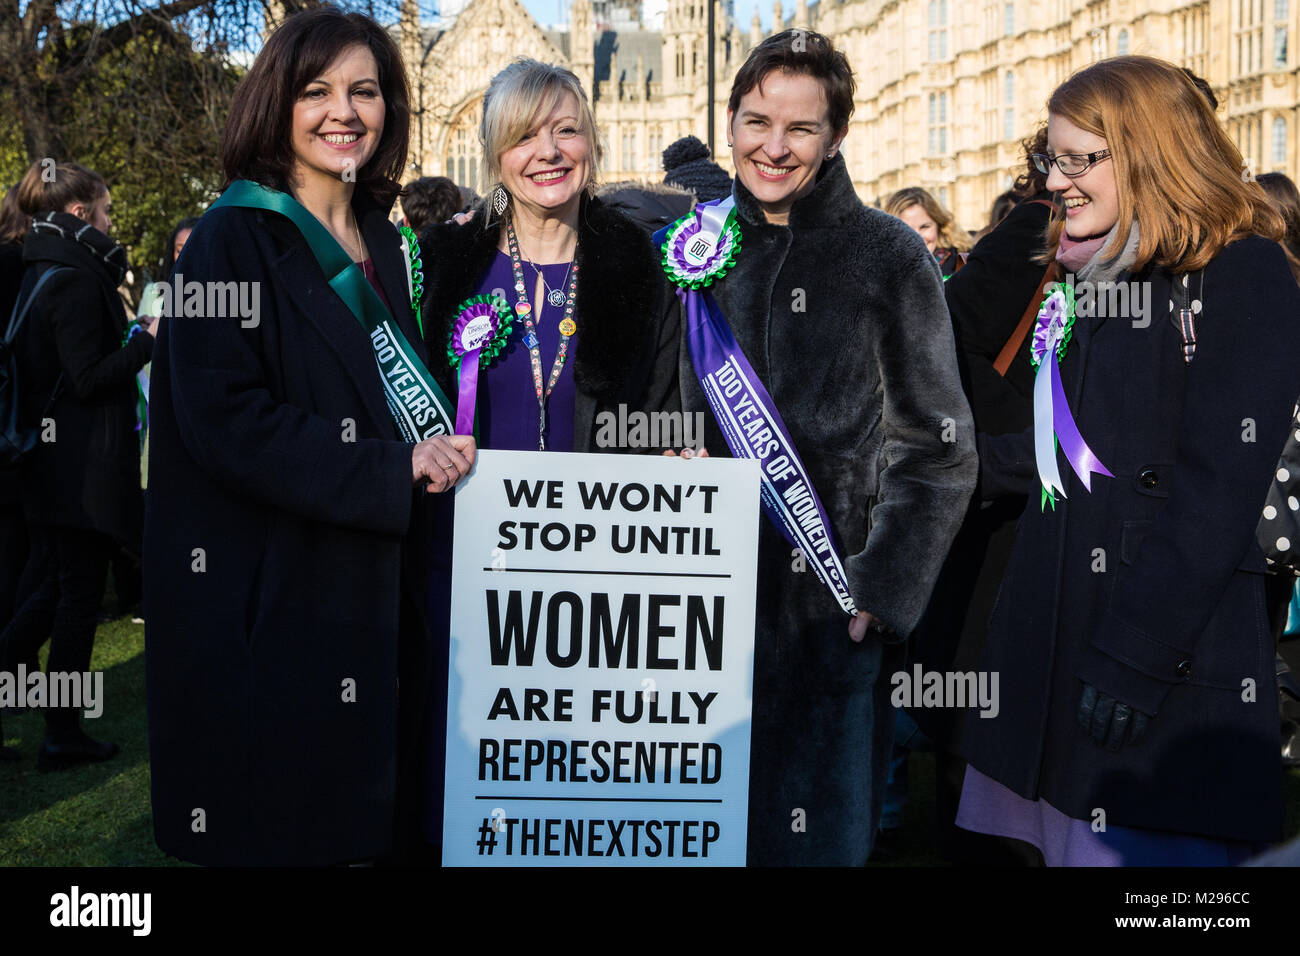 London, UK. 6th Feb, 2018. Caroline Flint MP, Tracy Brabin MP, Mary Creagh MP and Holly Lynch MP attend a gathering - Stock Image